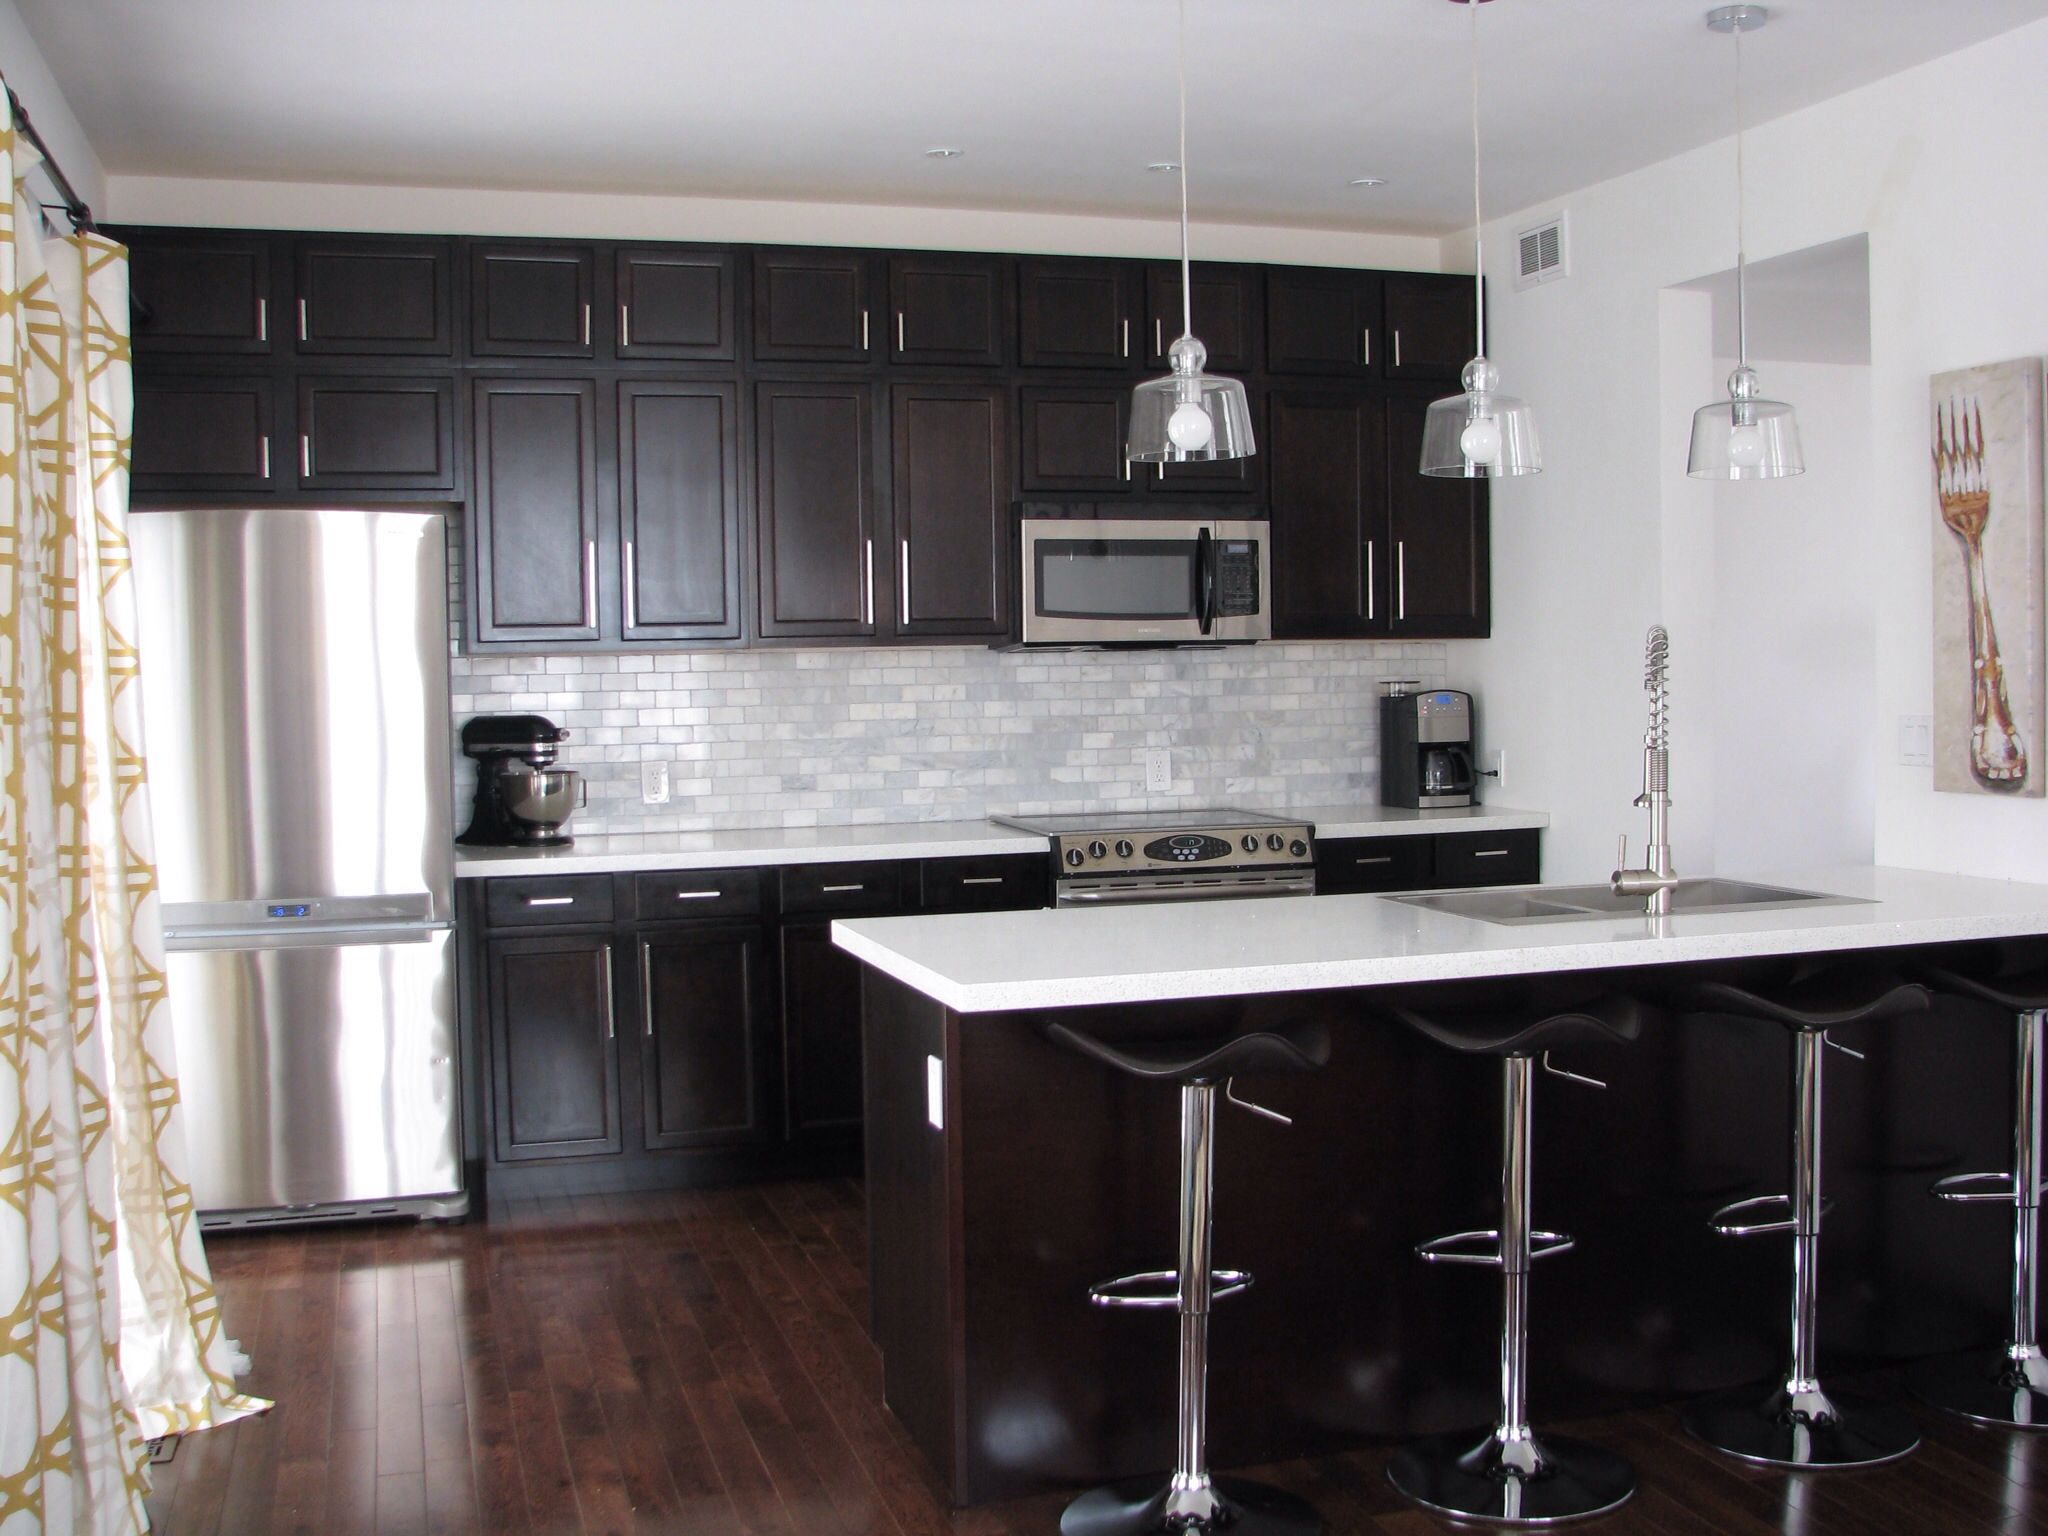 Rustic Black Kitchen Cabinets Island Remodel With Dark And White Quartz Counters